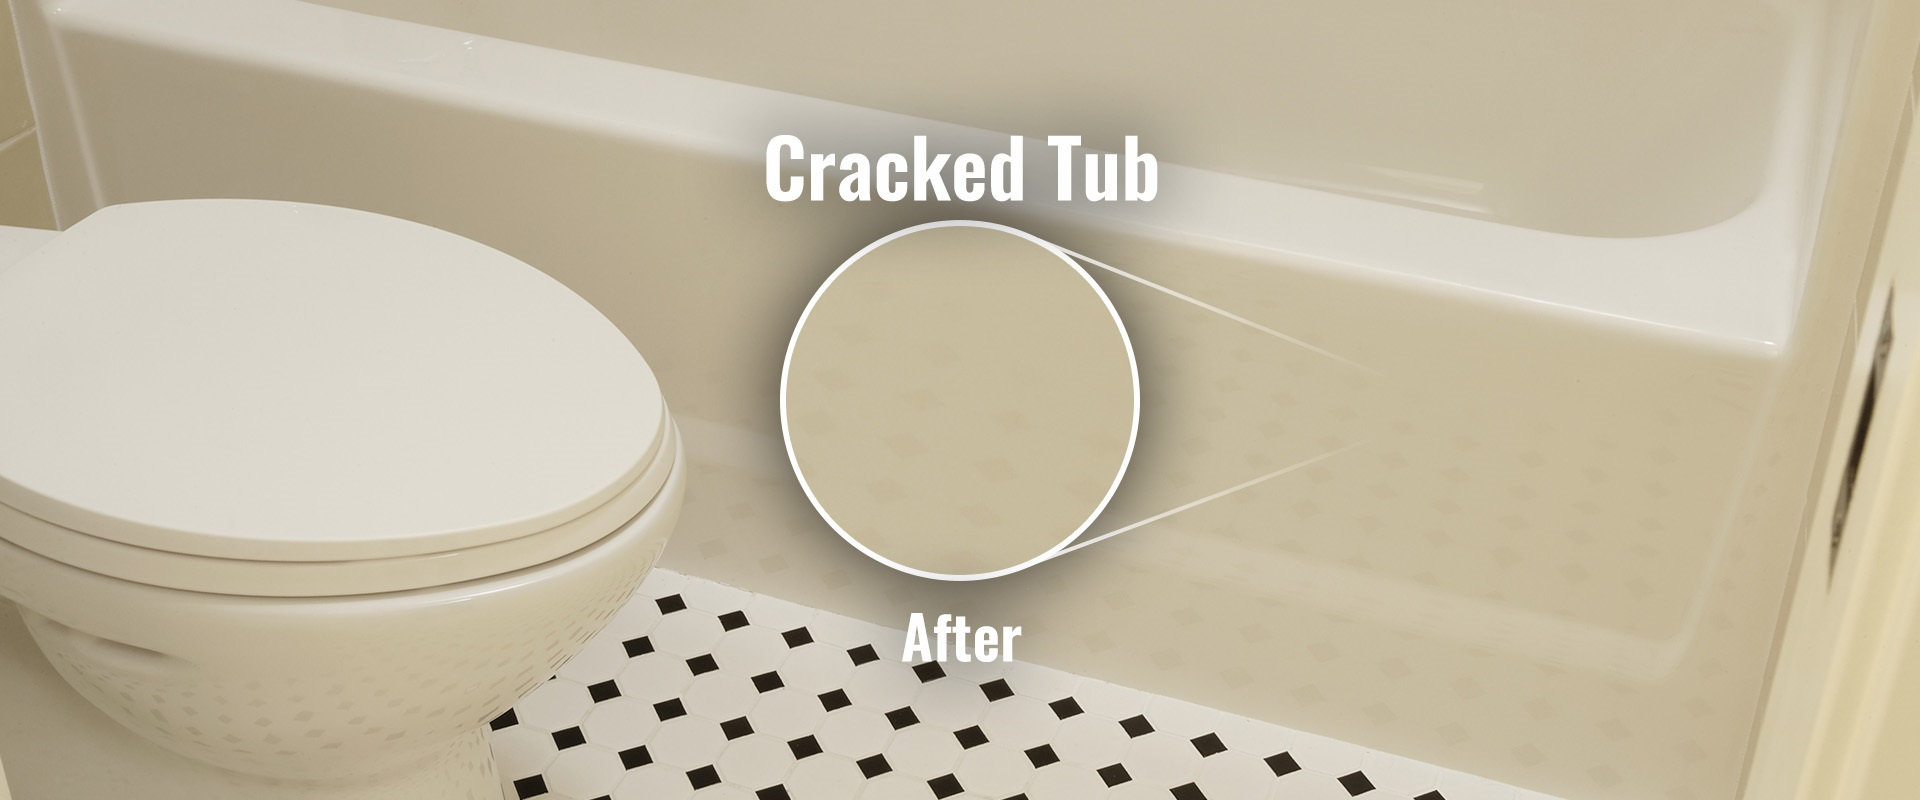 Fiberglass tub after crack repaired.